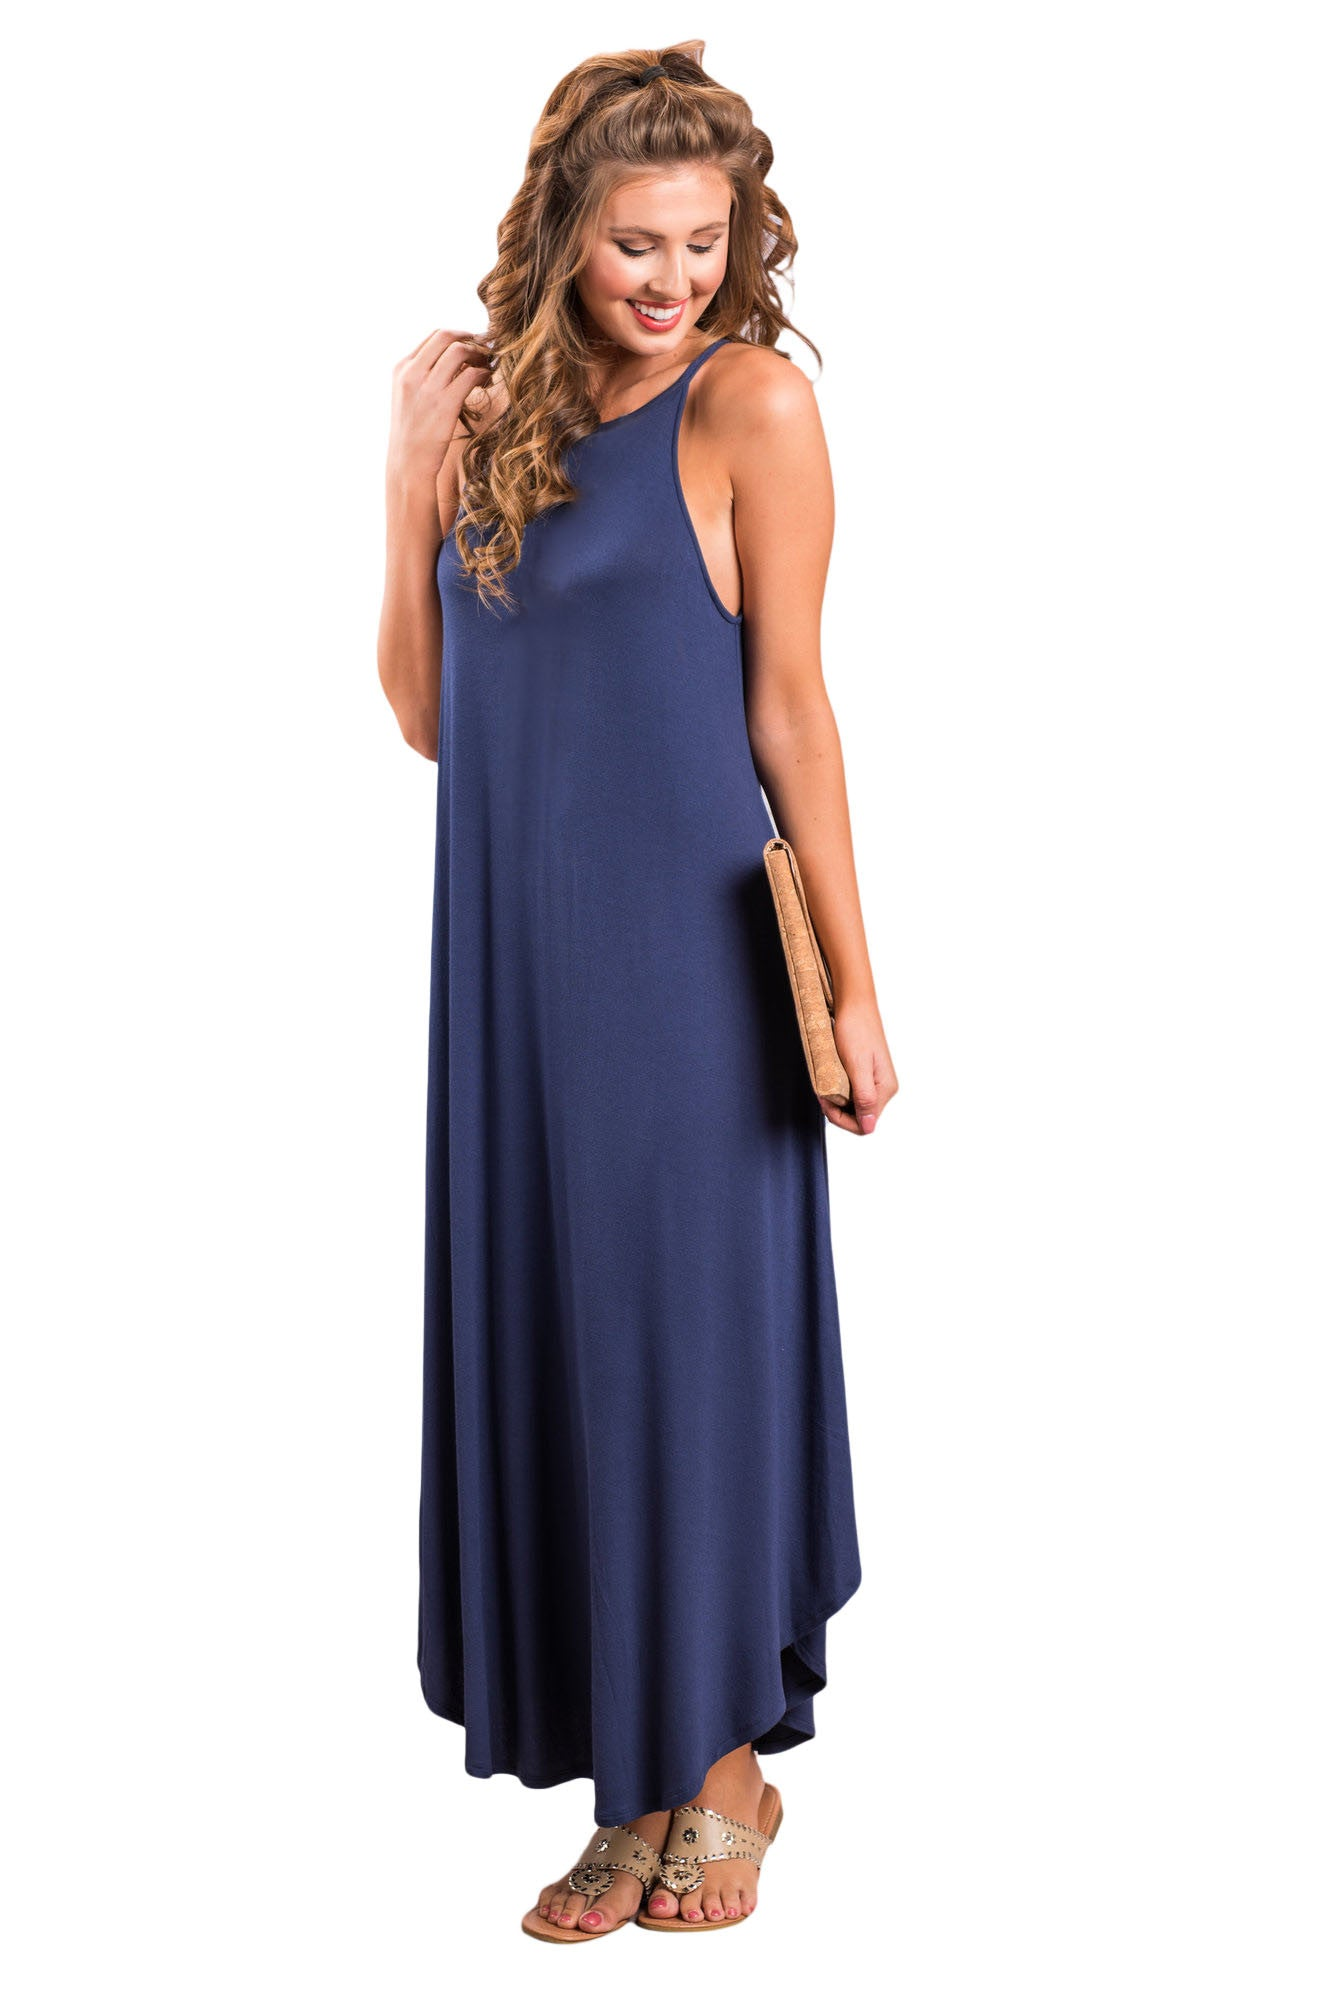 Her Fashion Blue Sexy Stylish Sleeveless Asymmetric Trim Maxi Dress